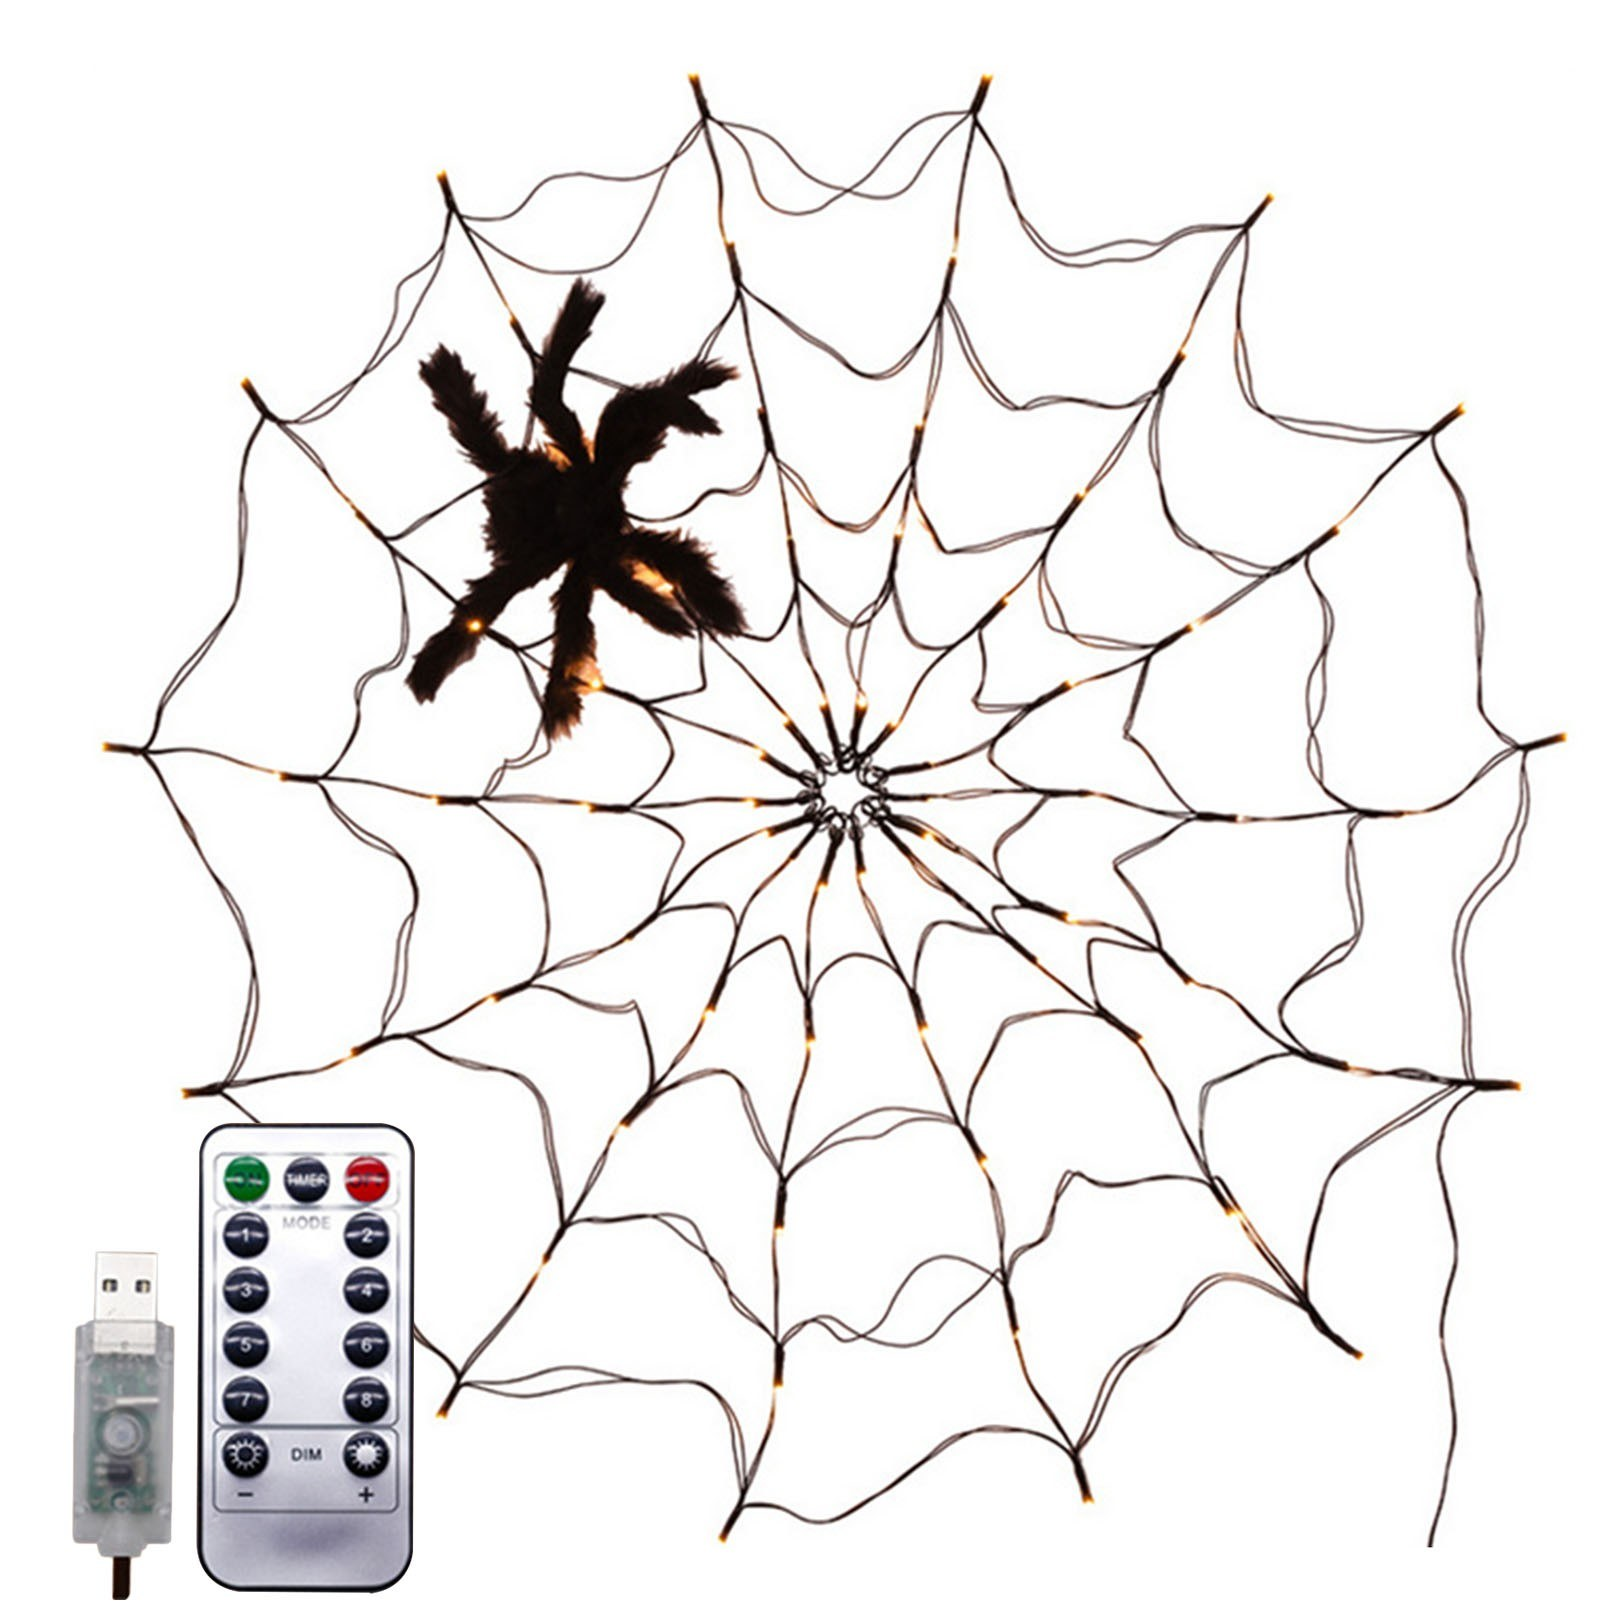 Tomtop - 56% OFF Spider Web Lamp with Black Spider Warm White Remote Control 8 Flashing Modes, $17.99 (Inclusive of VAT)